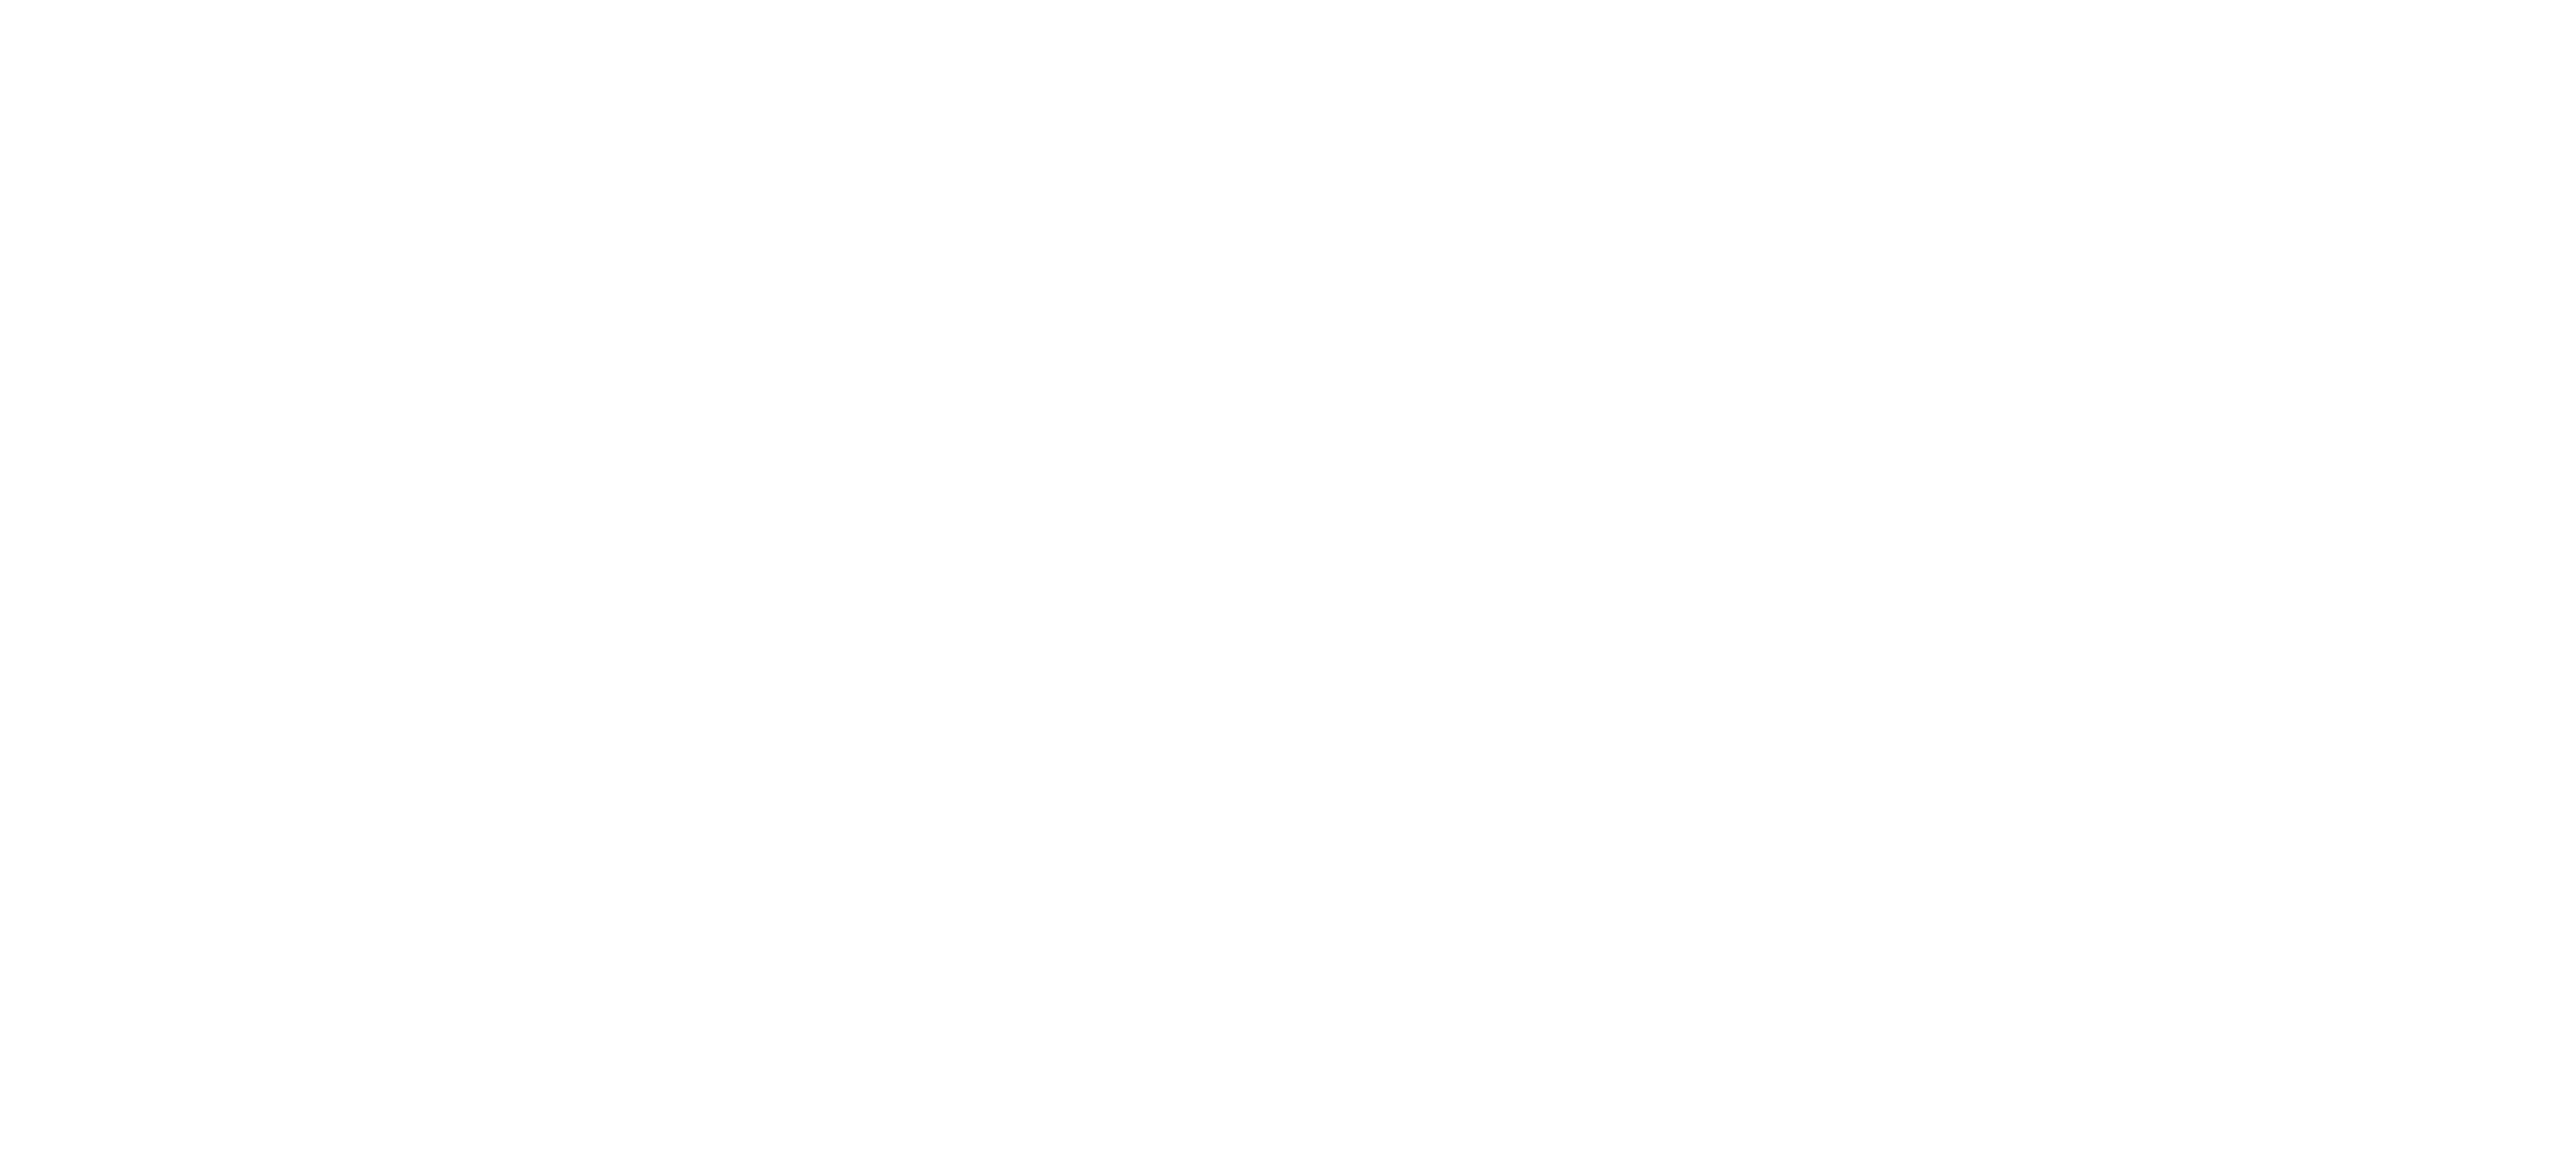 I CARRERA EMPRESAS ESIC -  SUR Business & Marketing: MÁLAGA